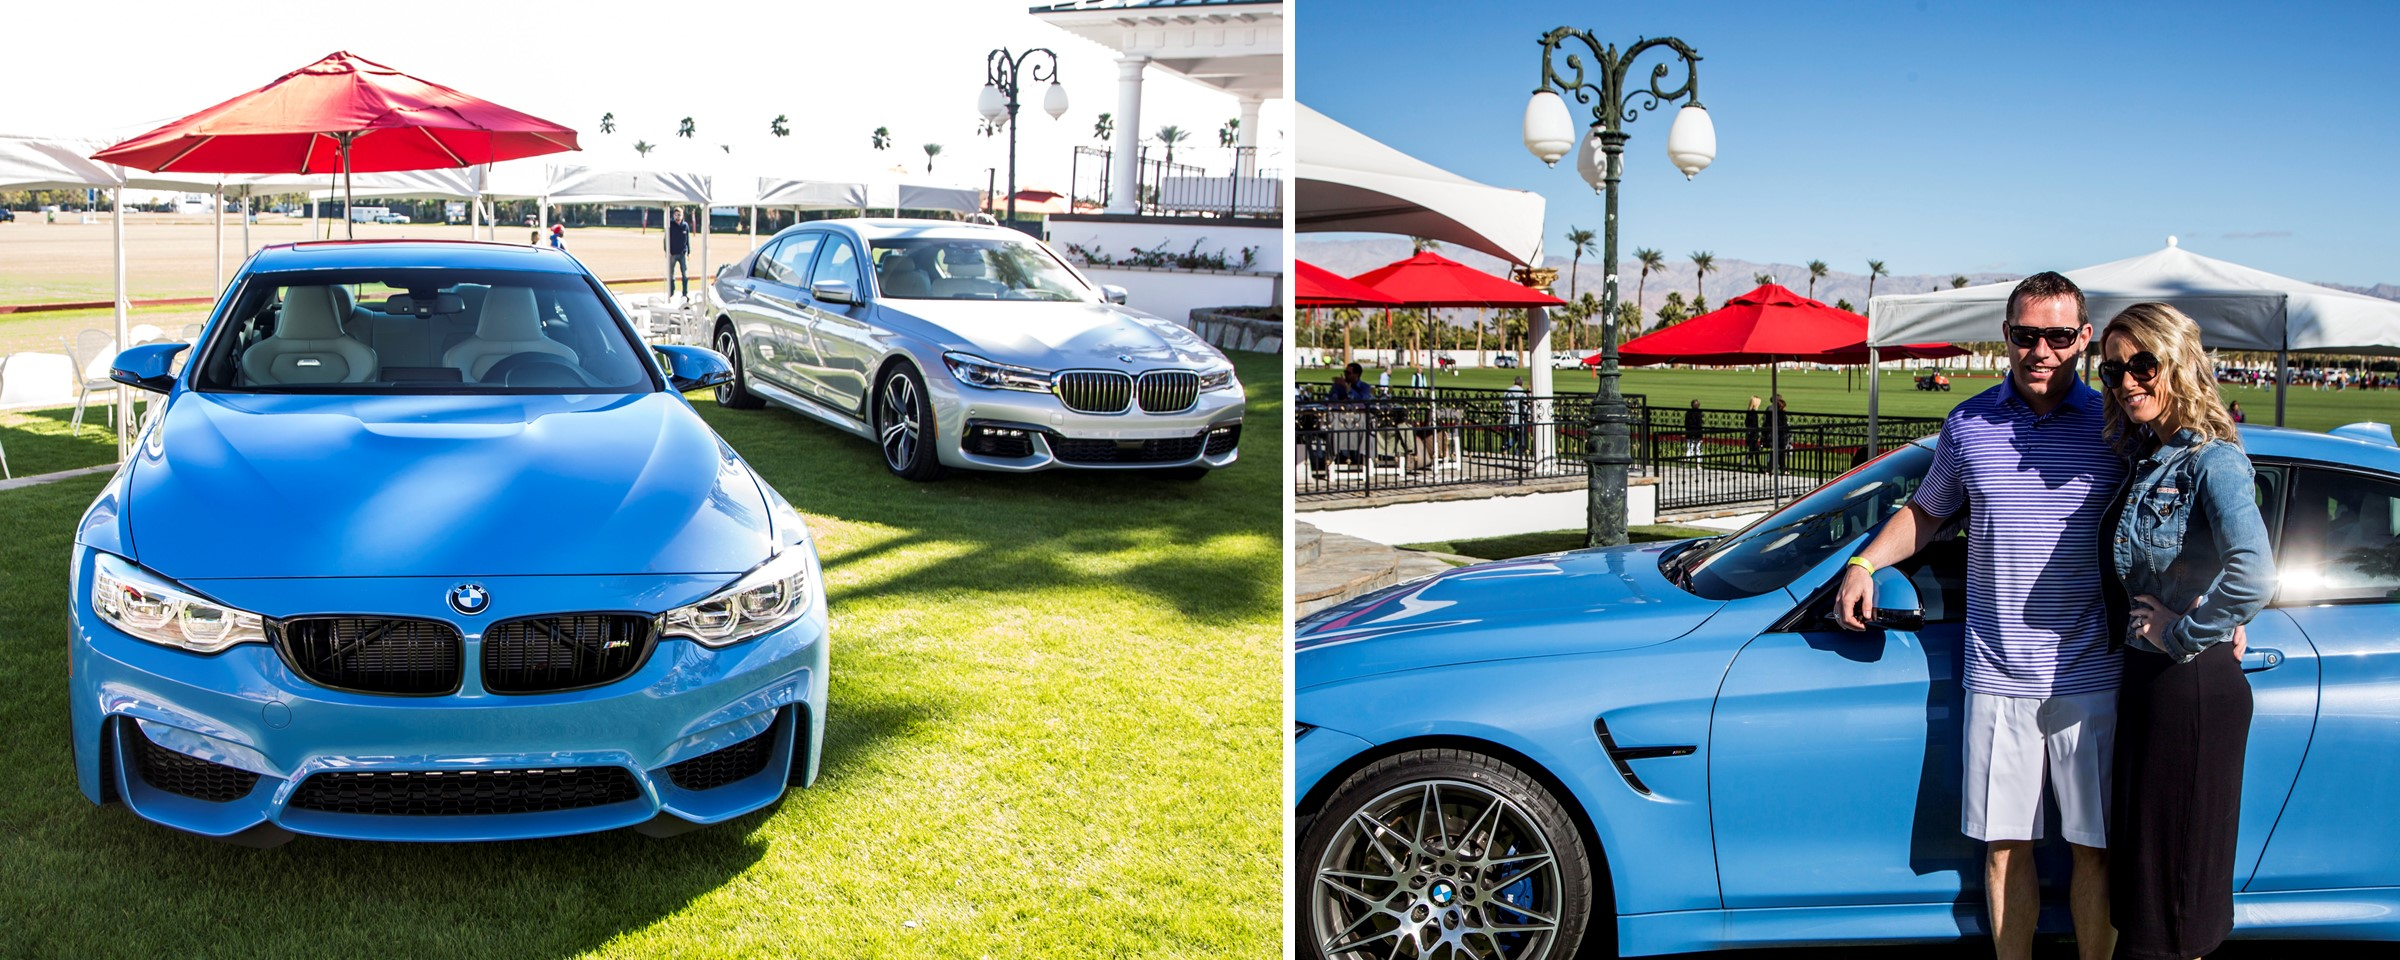 Photo Album Bmw Of Palm Springs At Empire Polo Club Bmw